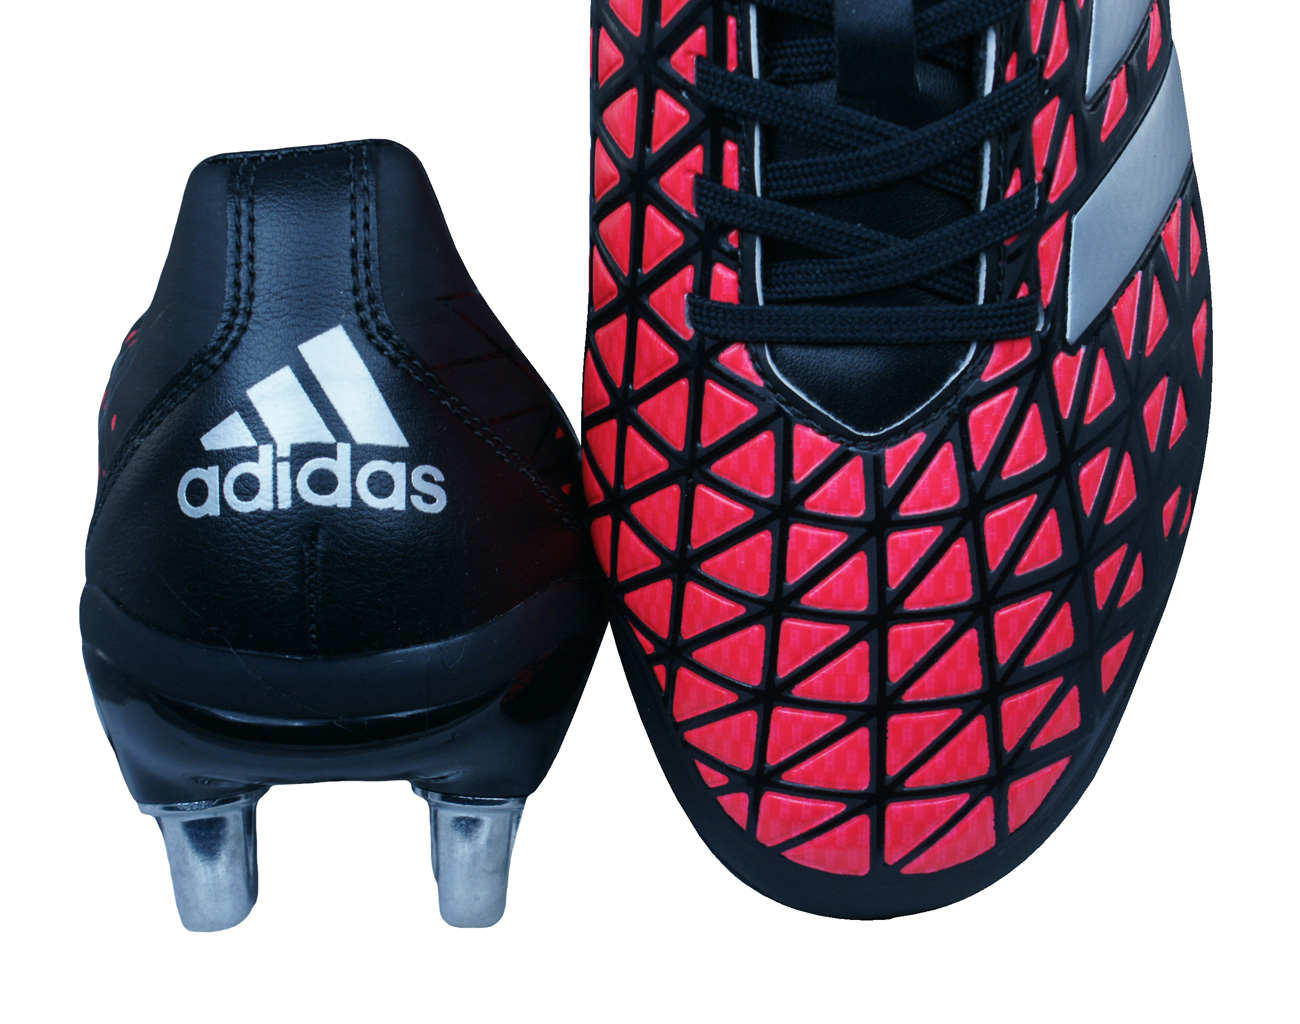 7dff82dedc2 adidas Kakari Elite SG Mens Rugby Boots - Black and Red at ...